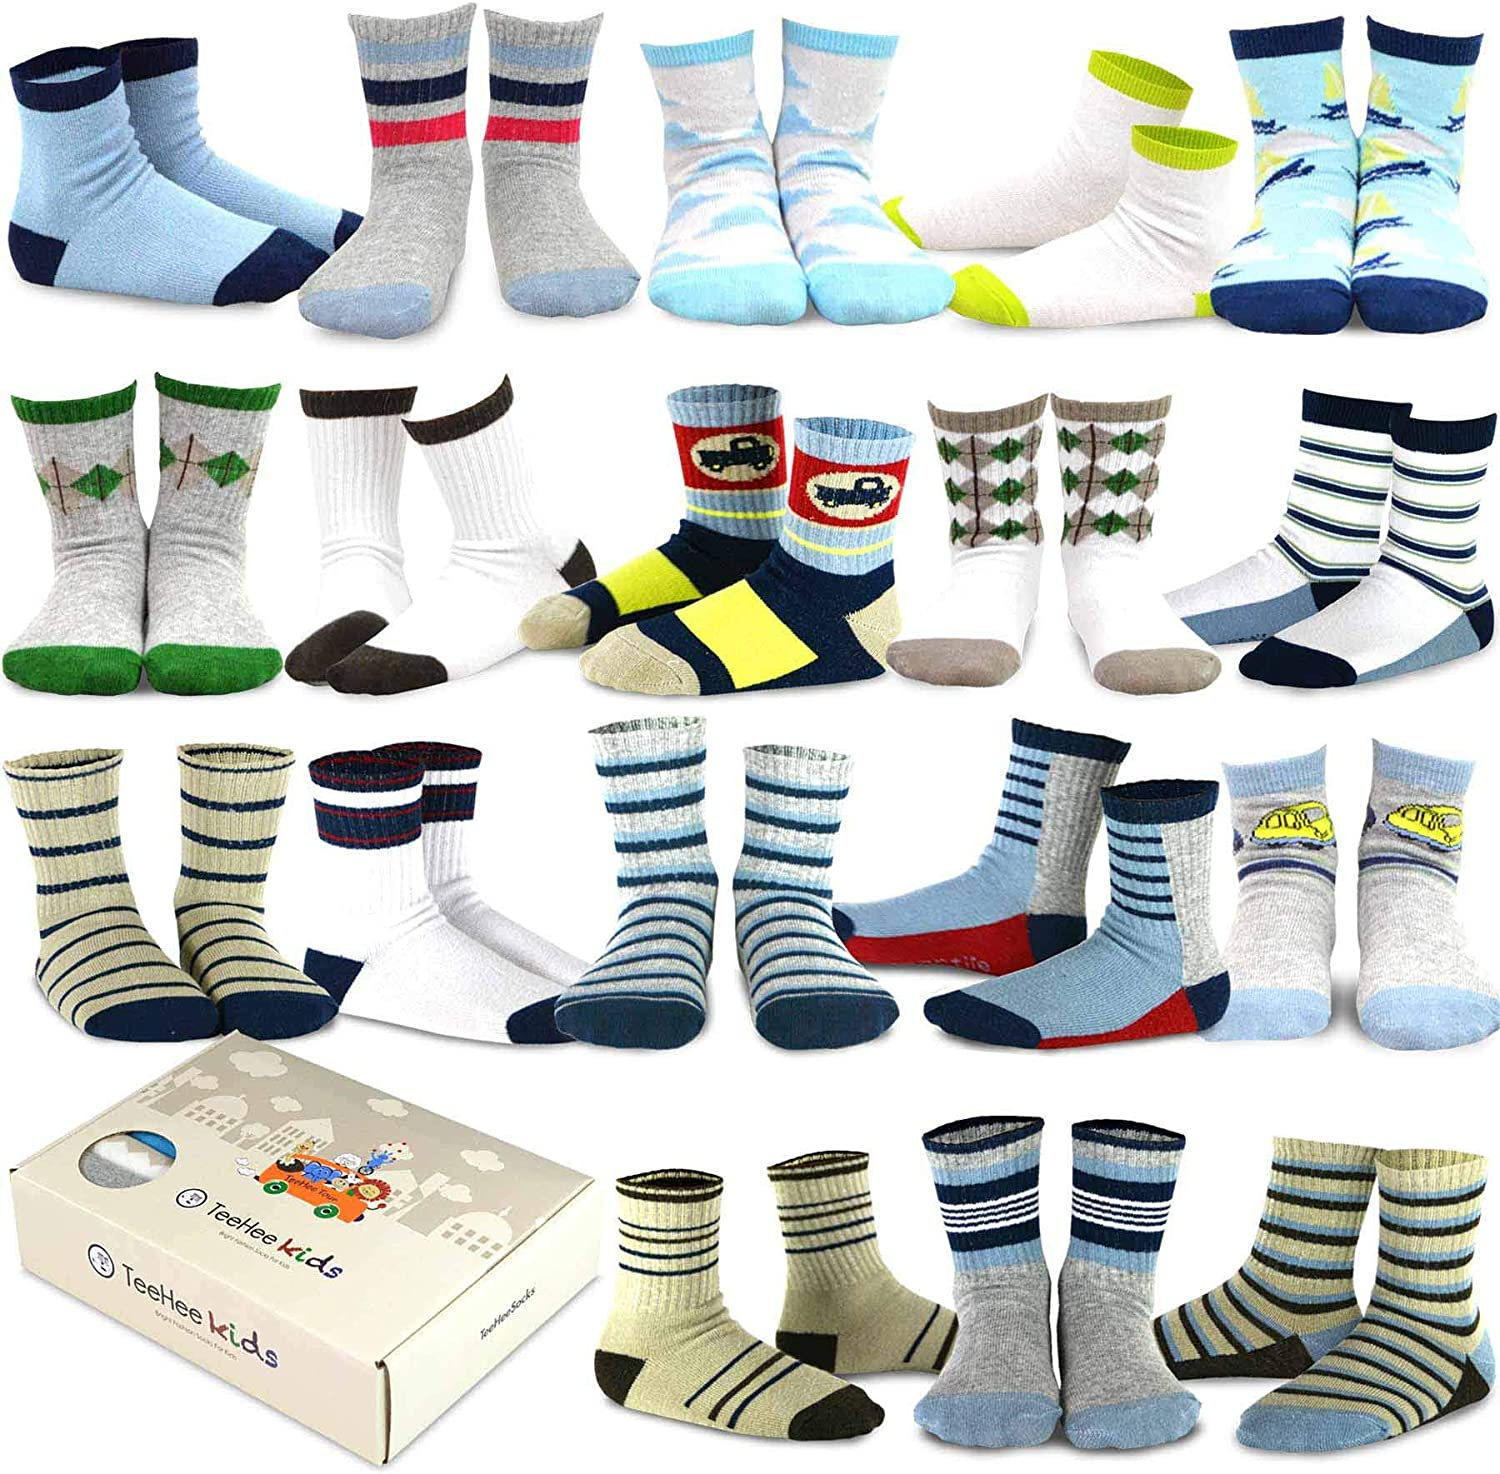 TeeHee Little Boys and Toddler Casual Sports Novelty Cotton Crew Socks 18 Pair Pack Gift Box: Clothing